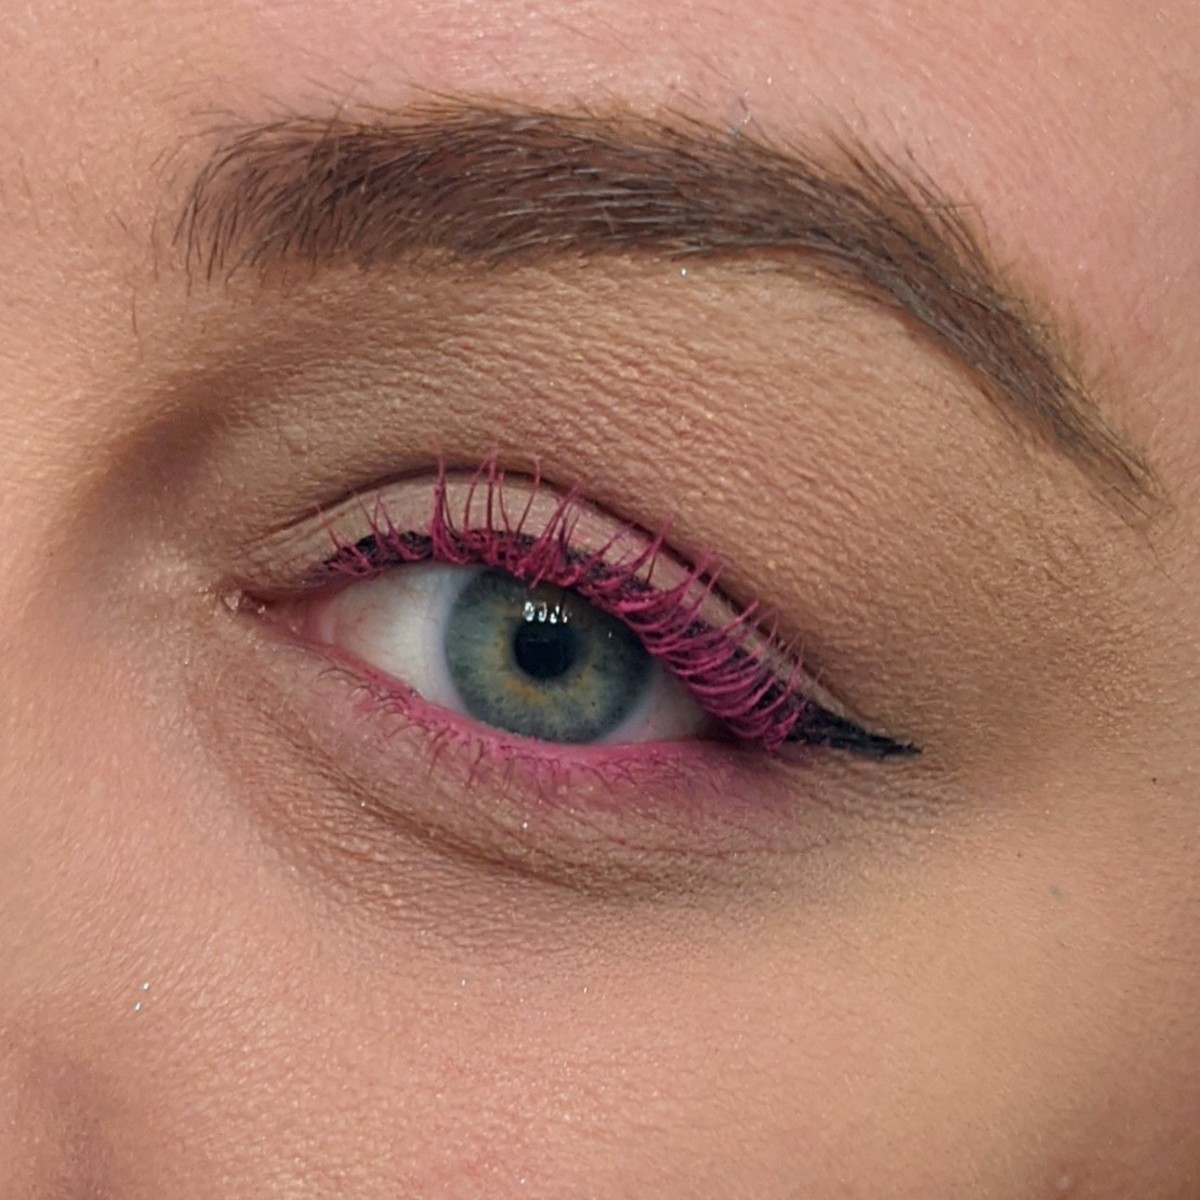 A bright neon pink mascara look I created using neon pink eyeshadow from Urban Decay's Wired Palette with Tarte Opening Act Lash Primer.